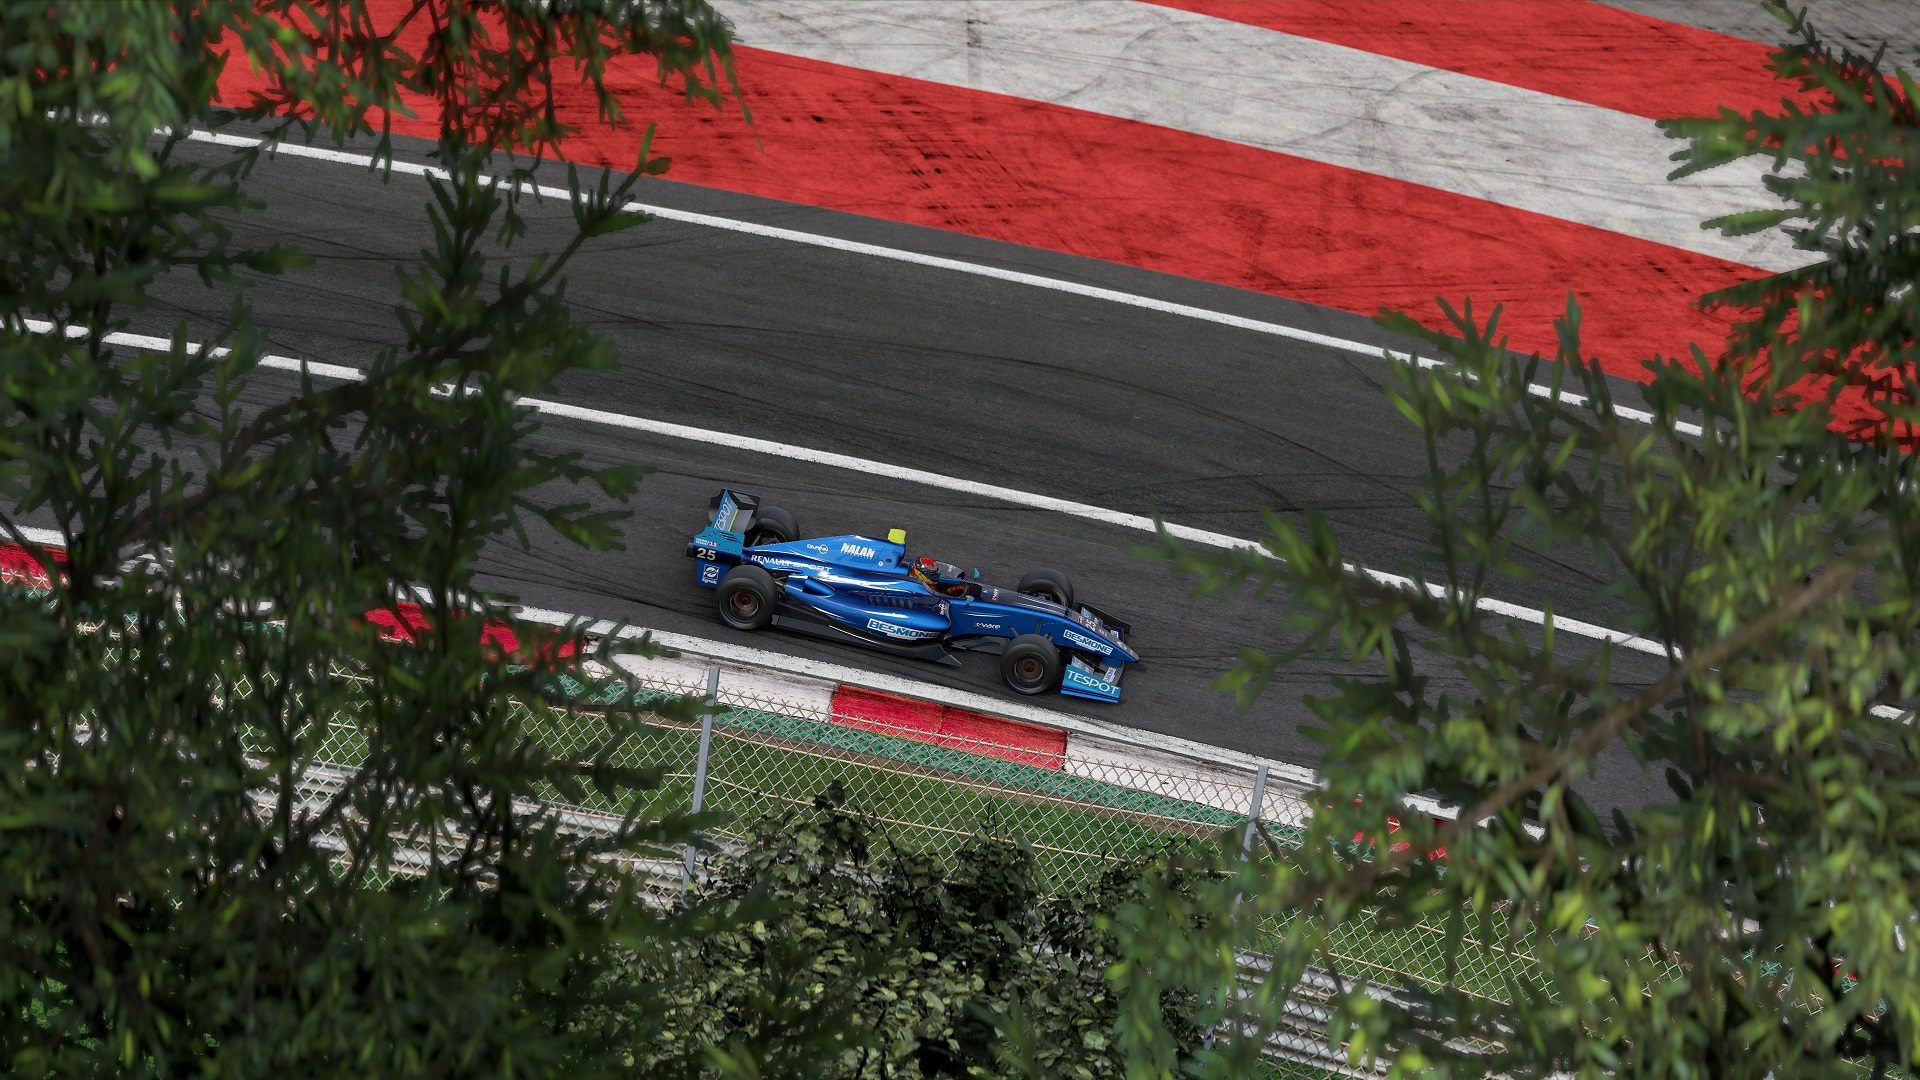 Project CARS 2_FormulaRenault35_2